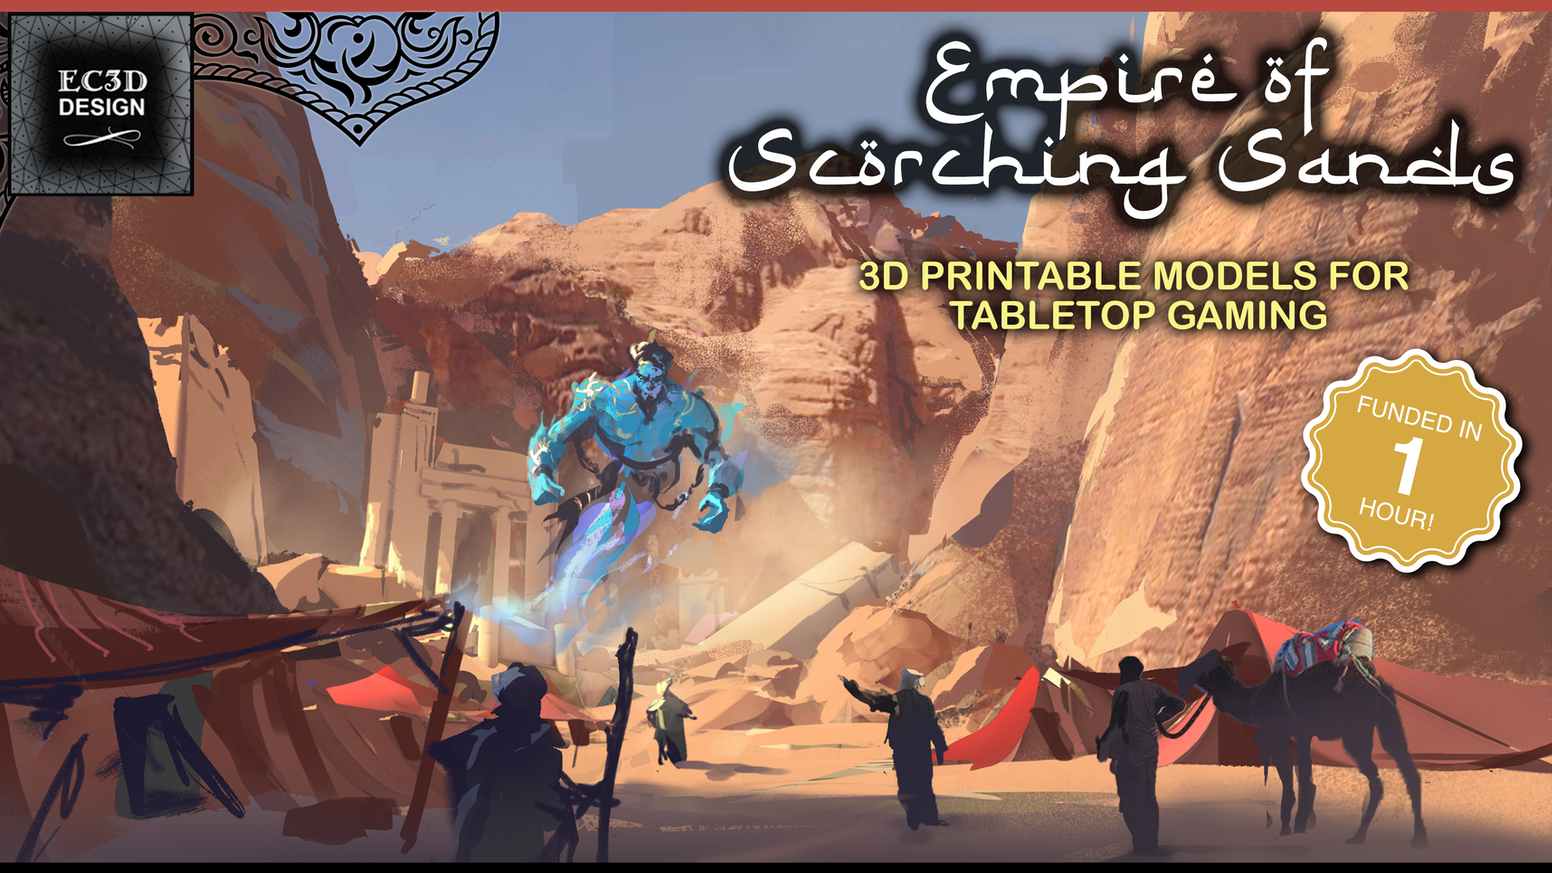 3D printable STL files for RPG / wargaming - support-free minis and terrain with a desert/Arabian/Egyptian/Persian theme. Late pledge coming soon!